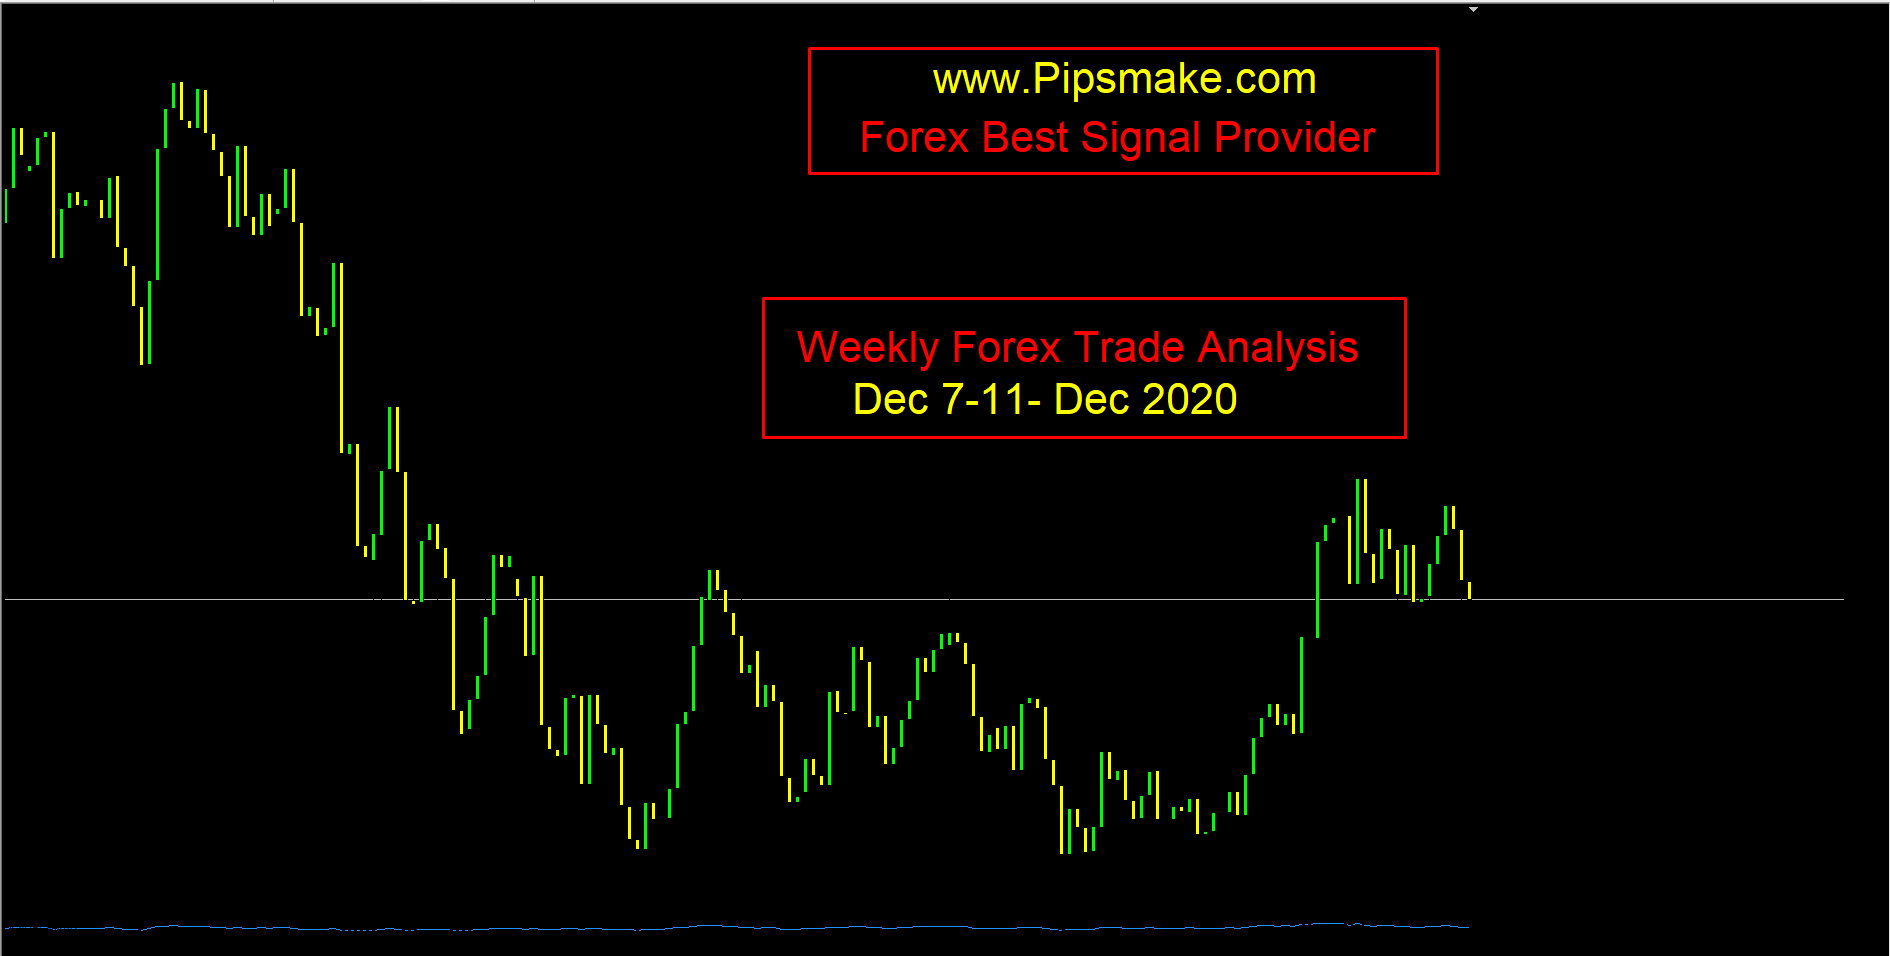 Weekly Forex Trade Analysis 2020